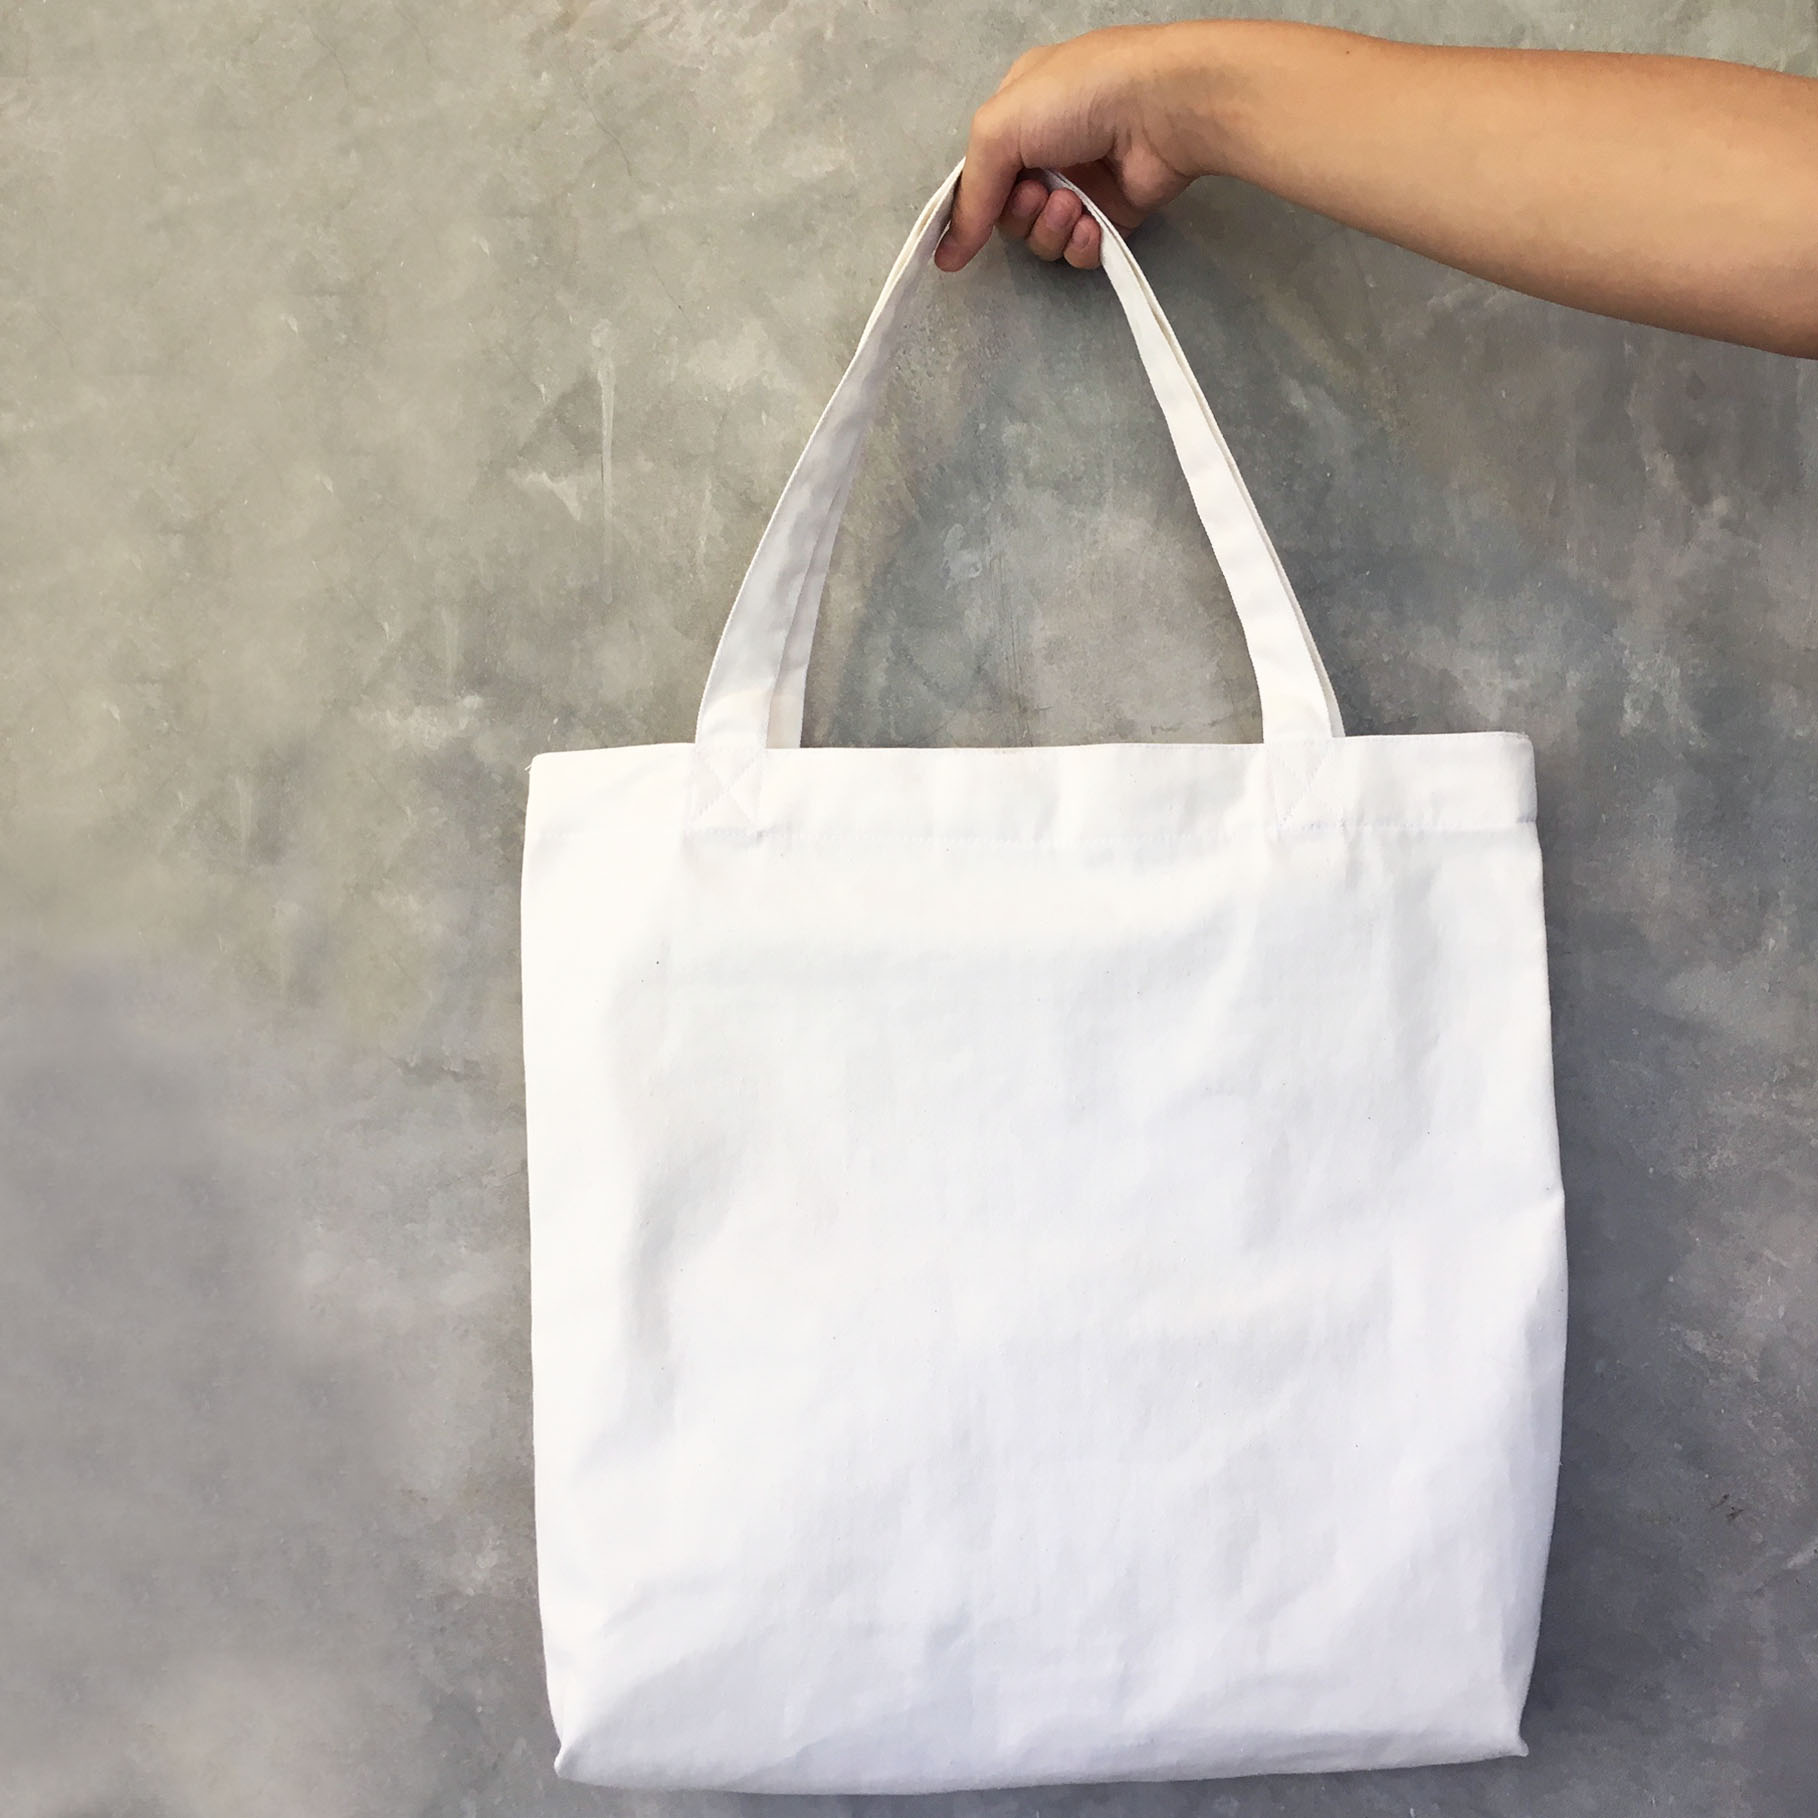 Classic canvas totes